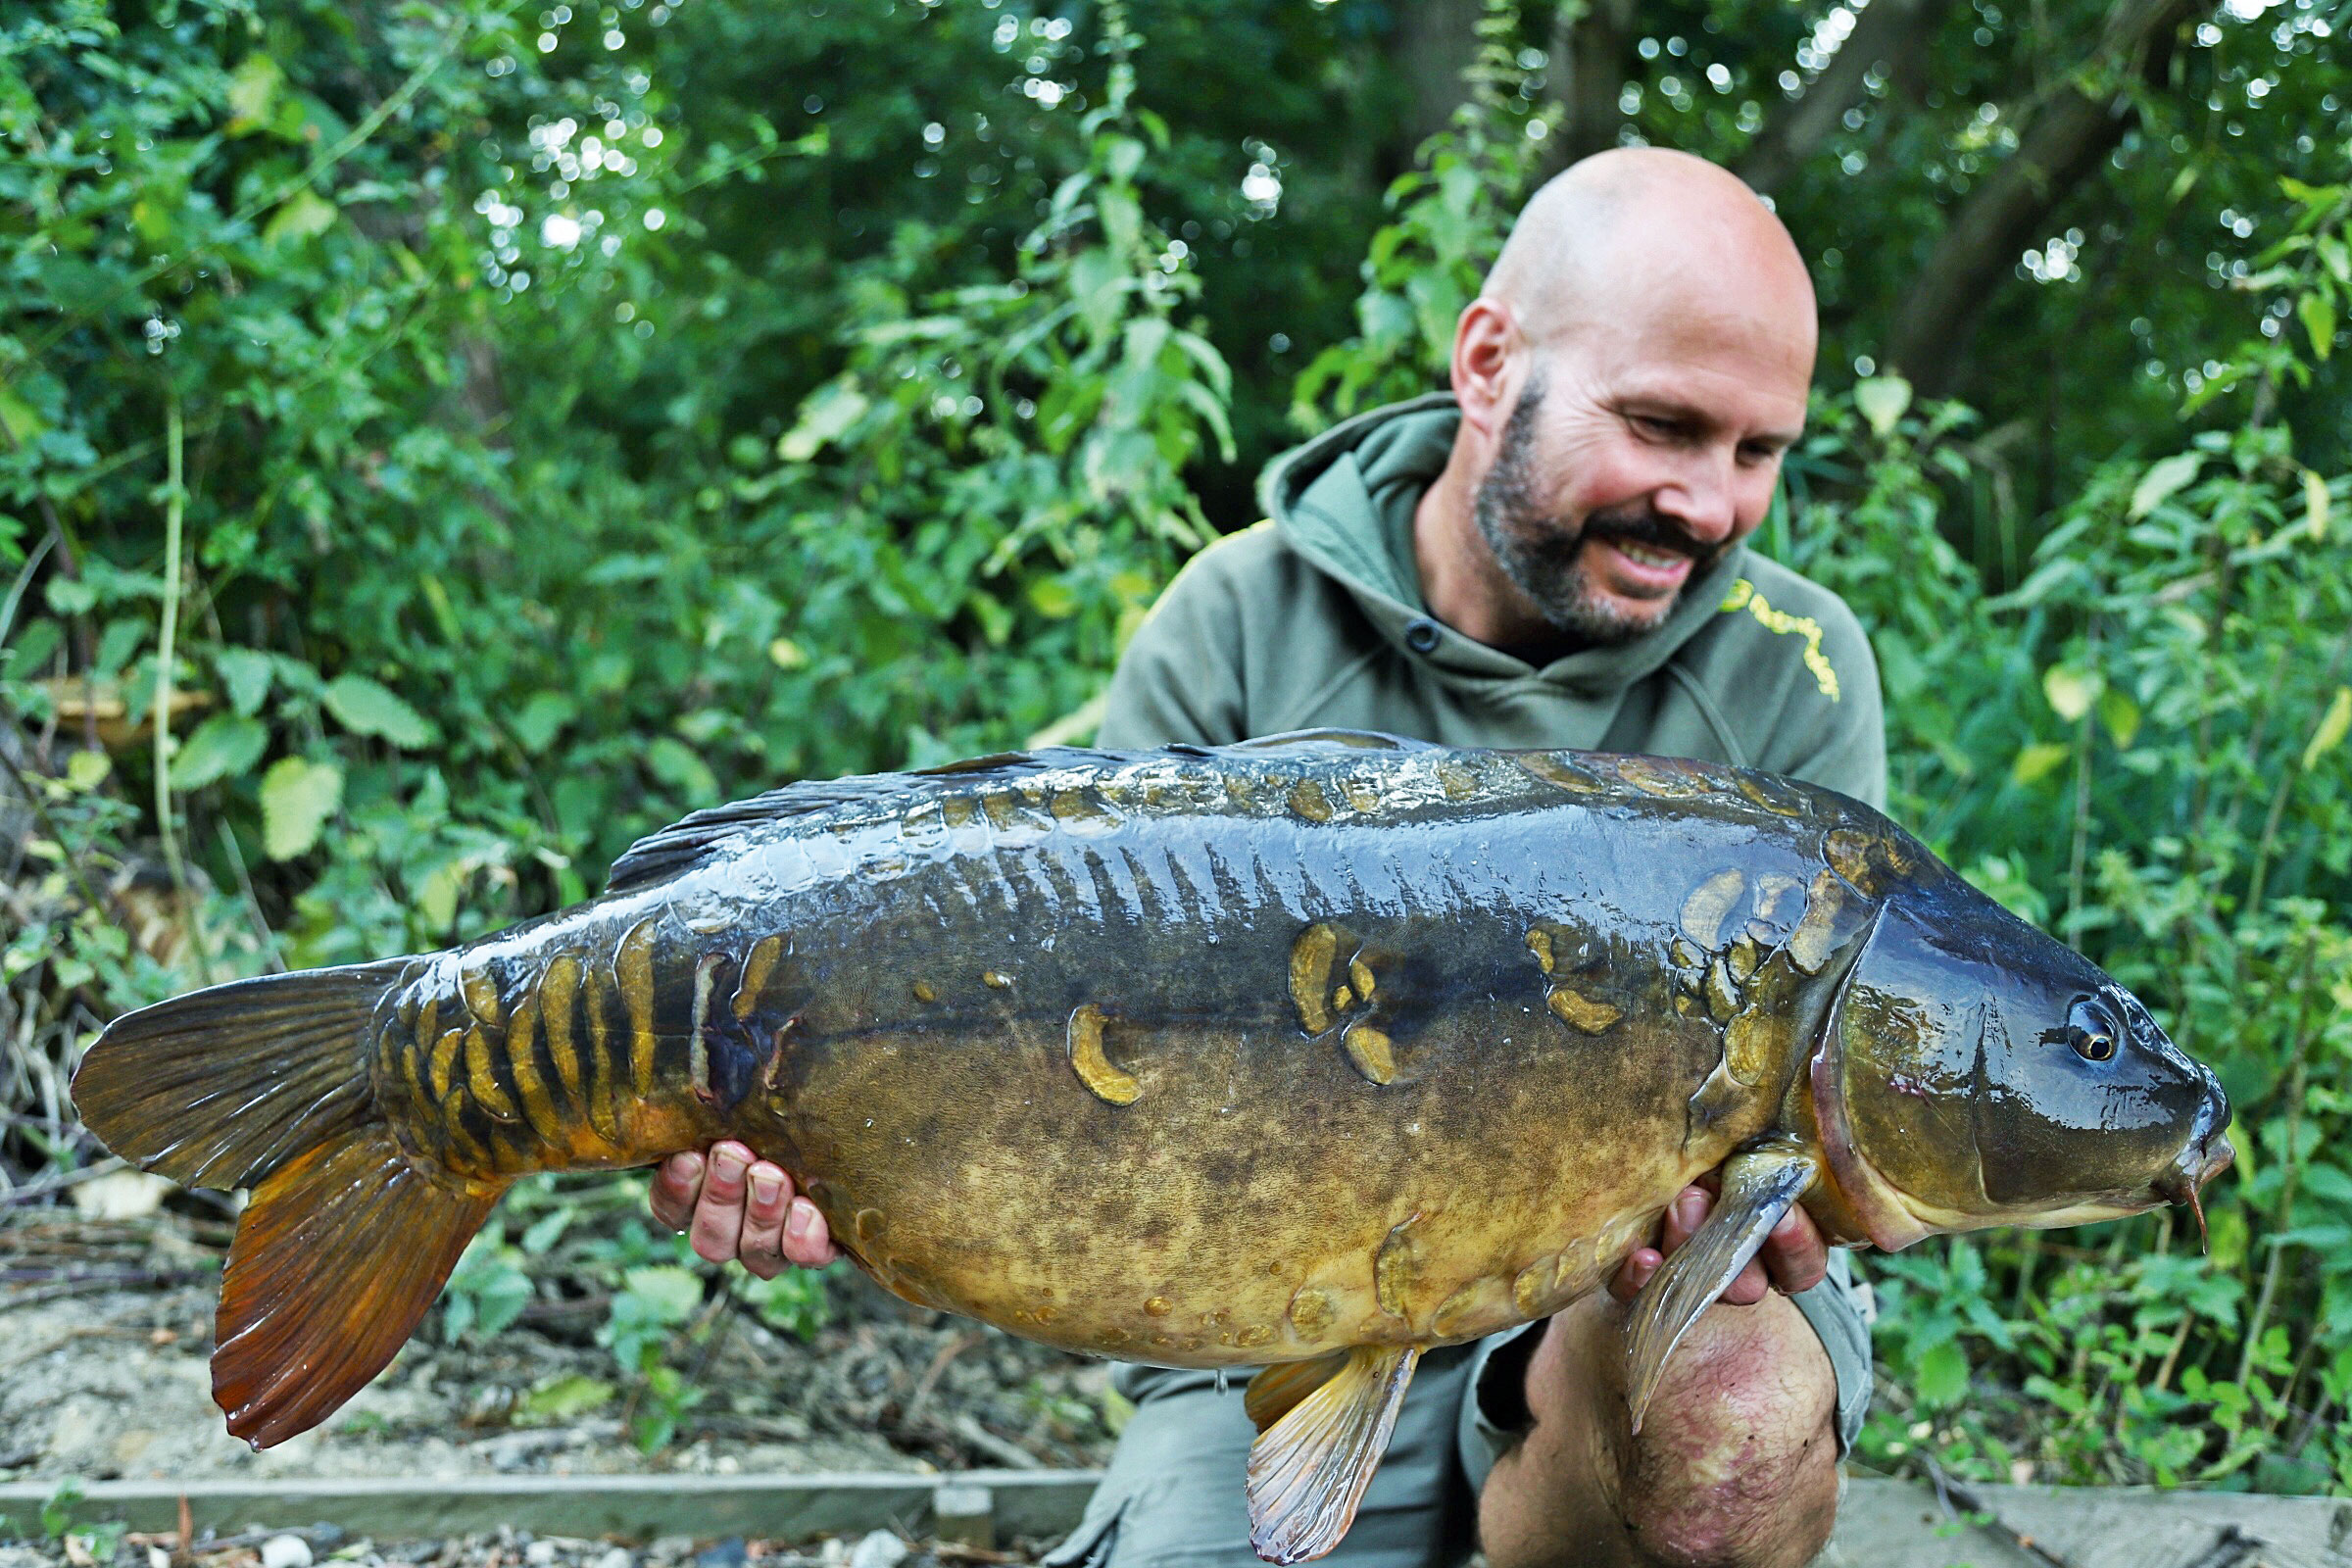 This carp was caught from a very weedy Kent lake, where heavy-duty tackle was required